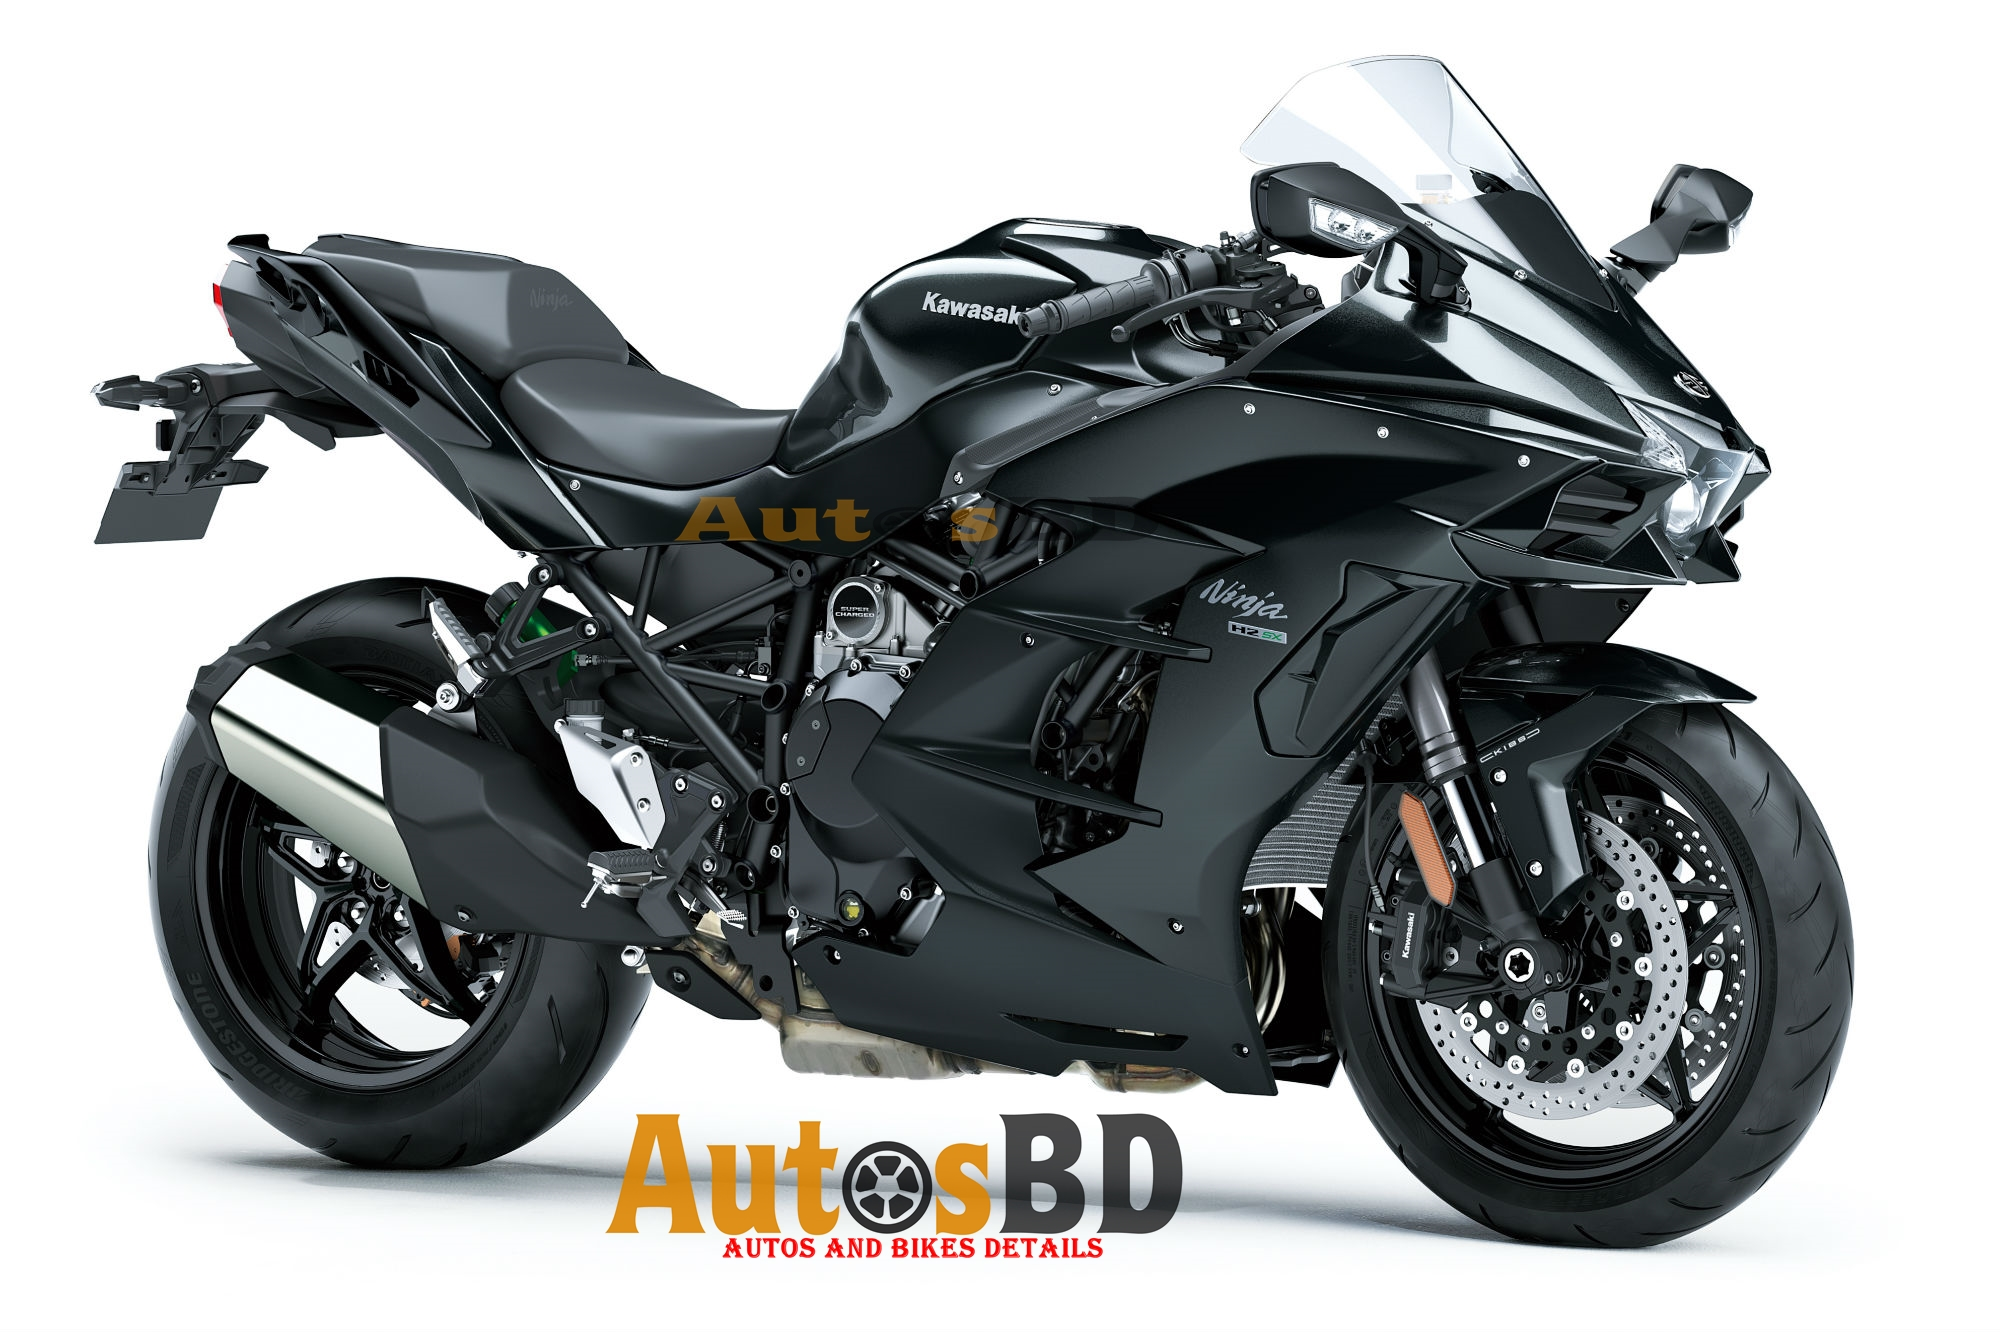 Kawasaki Ninja H2 SX Motorcycle Specification